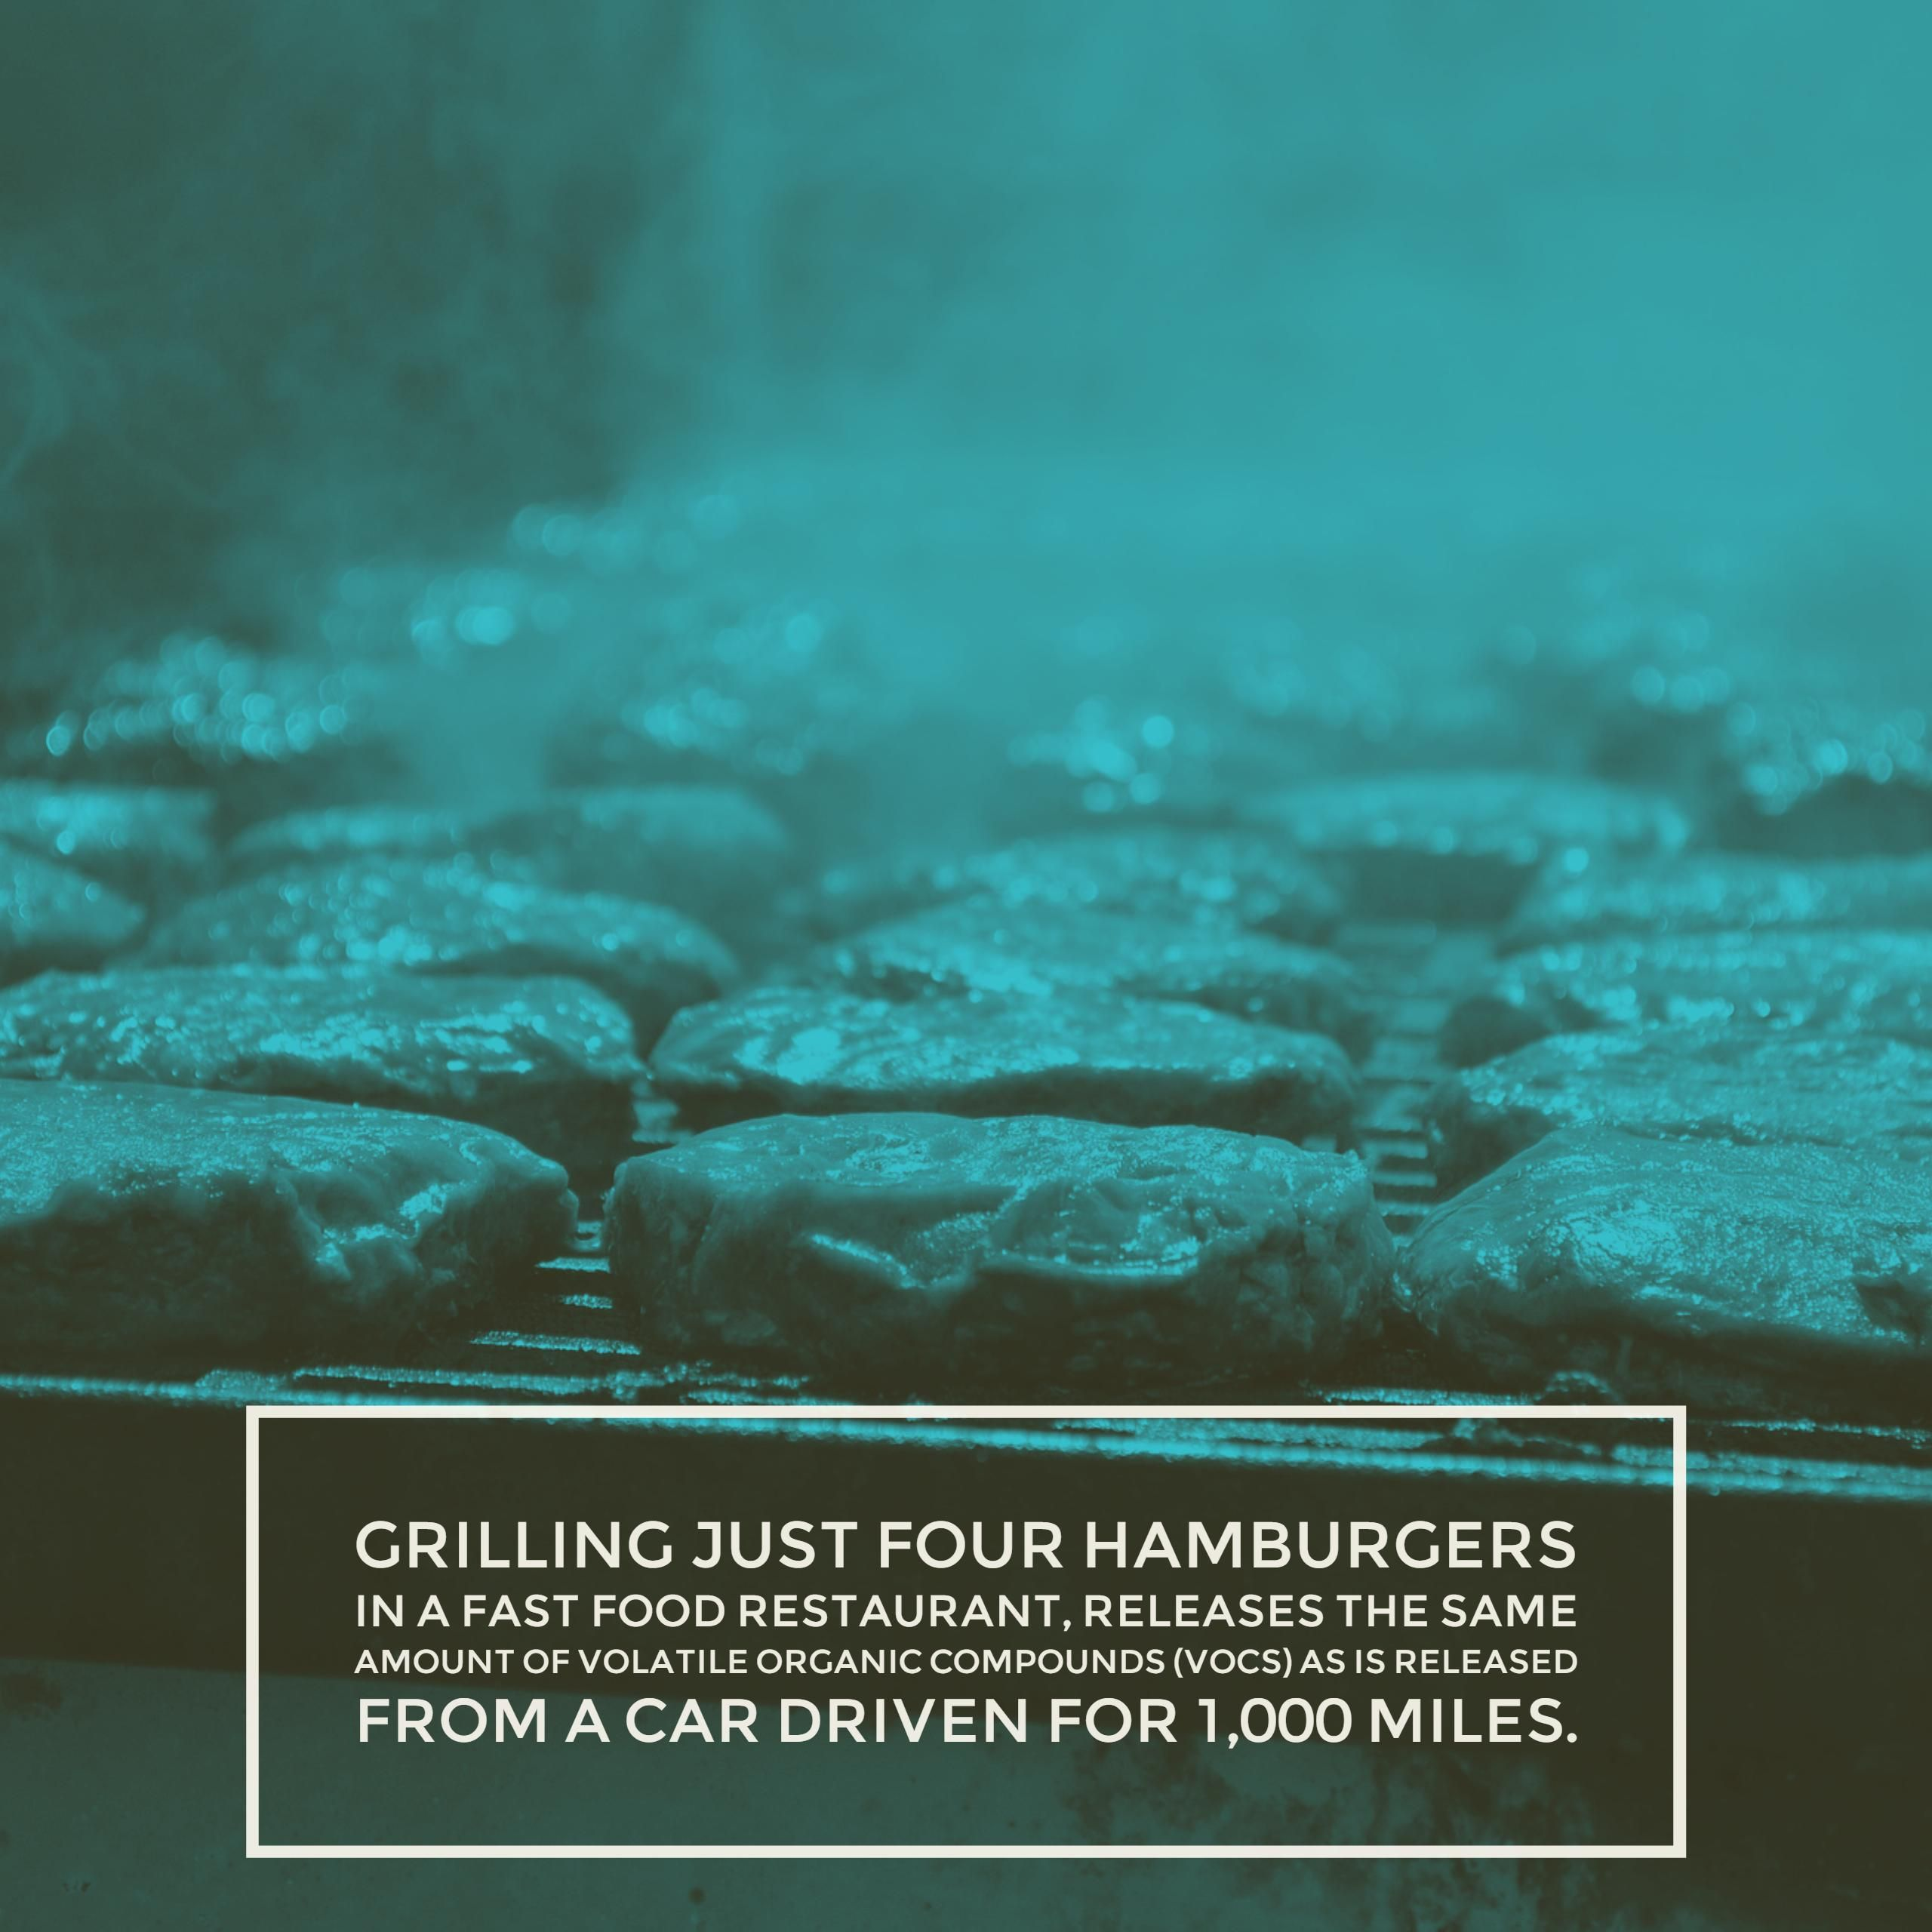 A recent study in Hong Kong revealed that grilling just